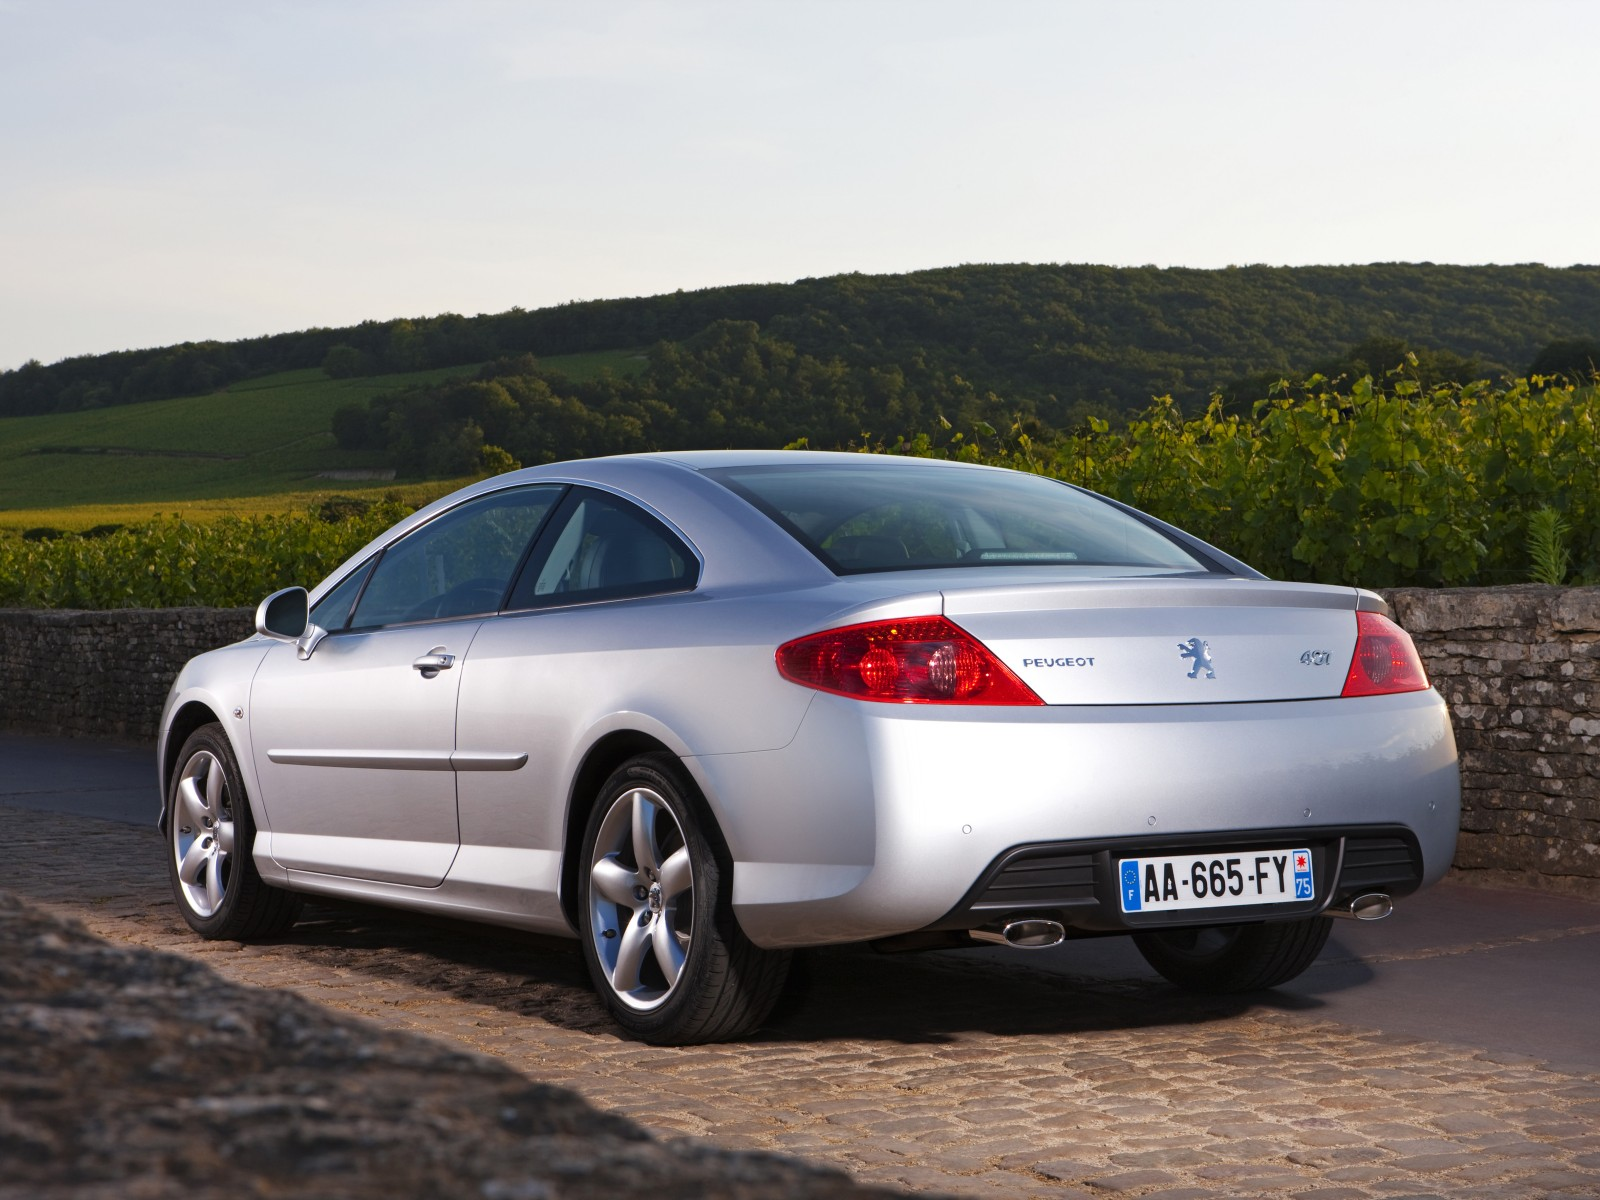 Peugeot 407 Coupe photo 04